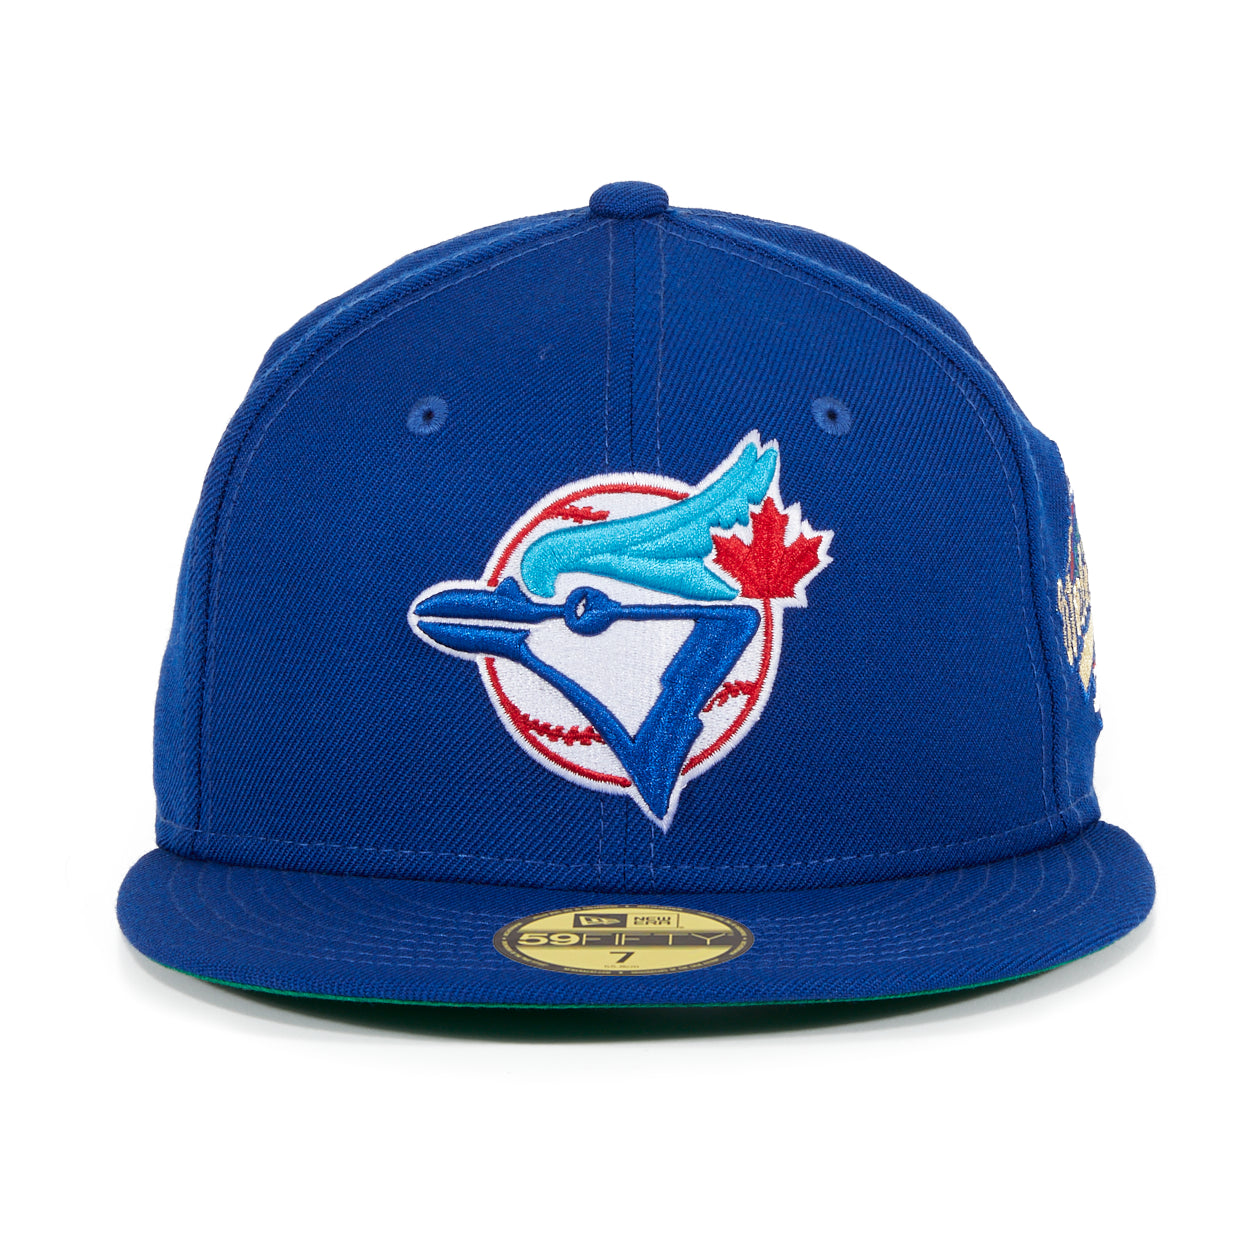 New Era 59Fifty Toronto Blue Jays World Series 1993 Hat - Royal